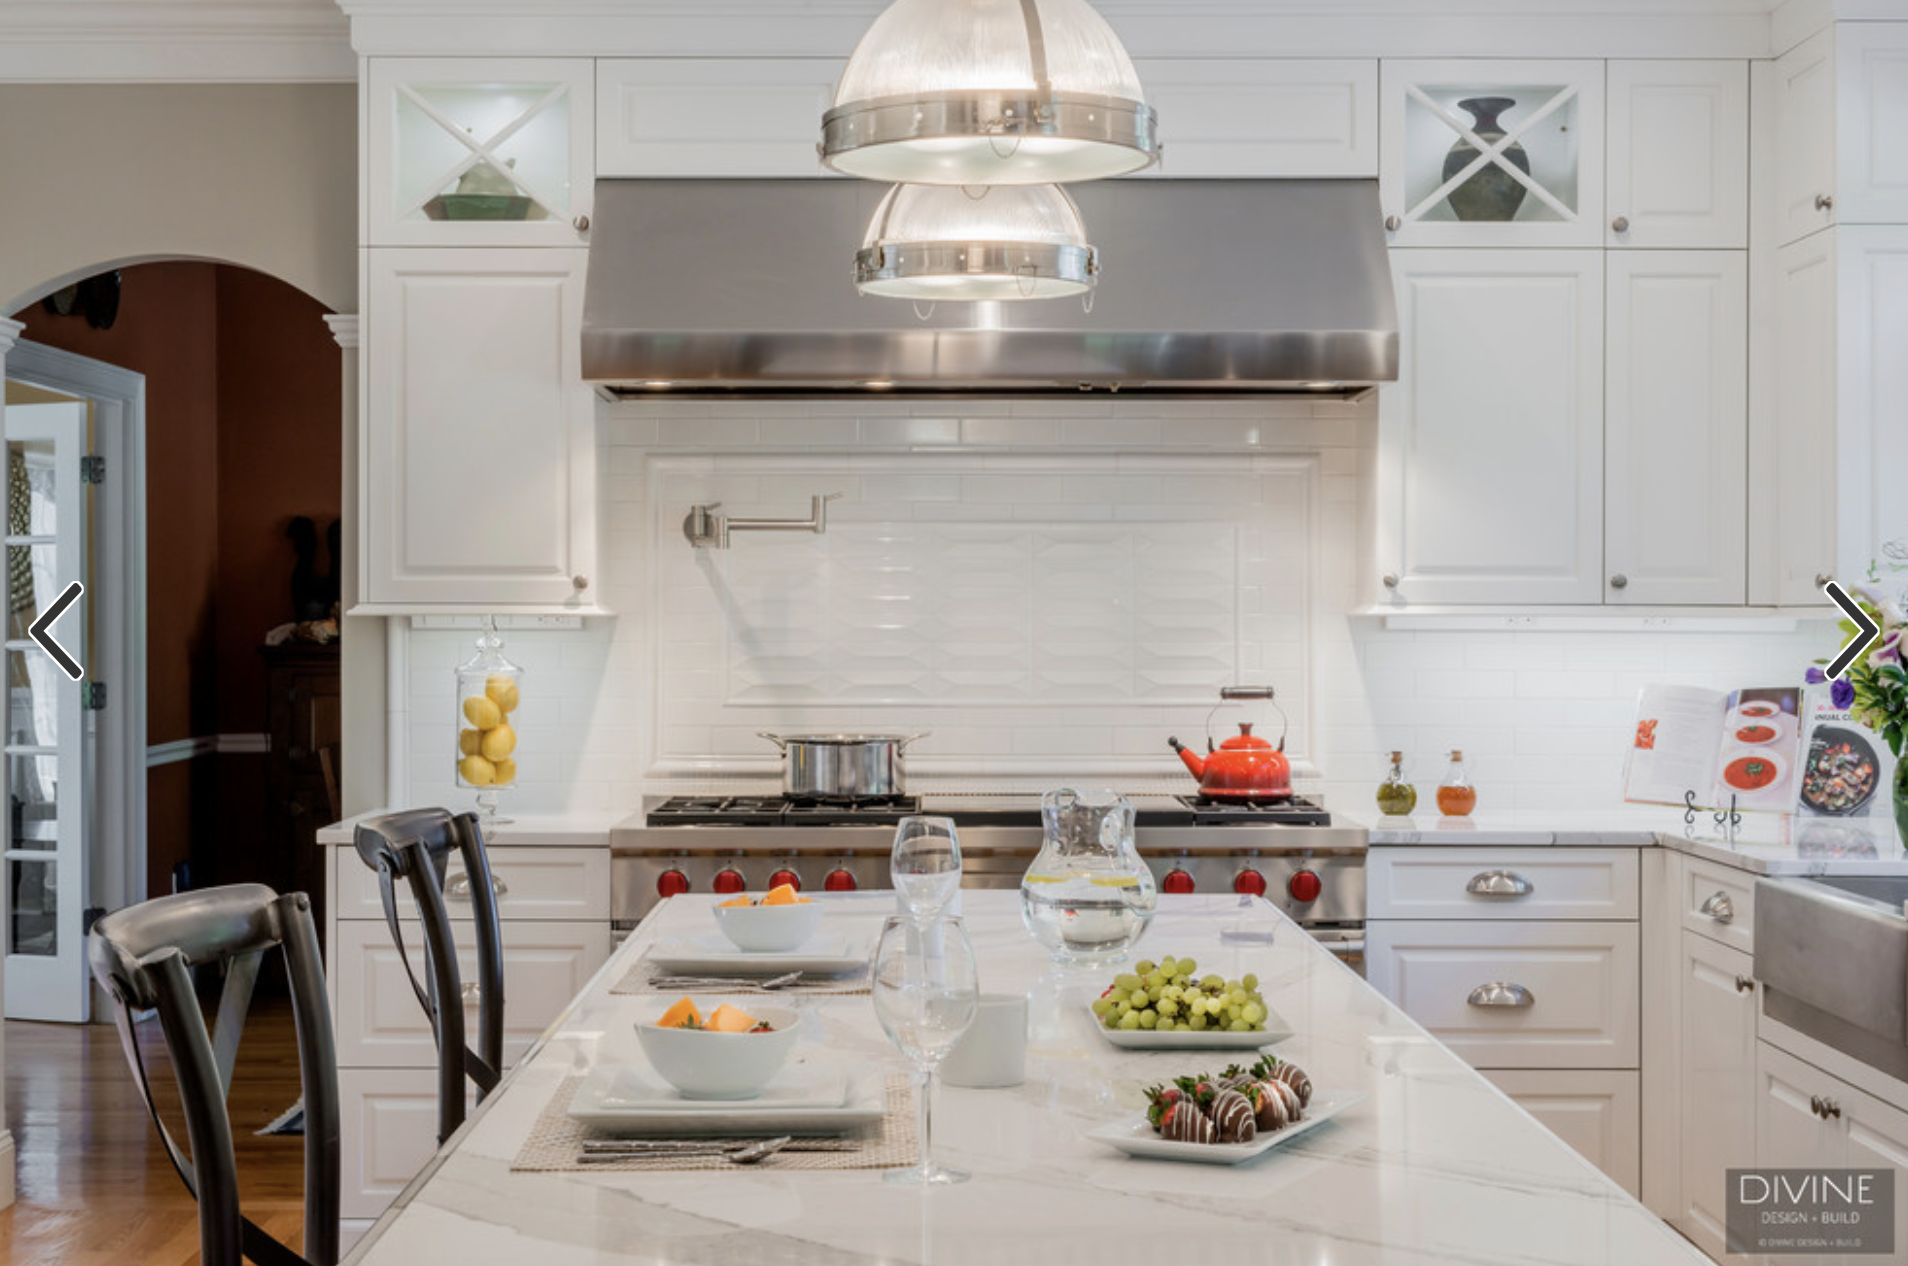 8 Pictures of Kitchens With Subway Tile Backsplashes ...